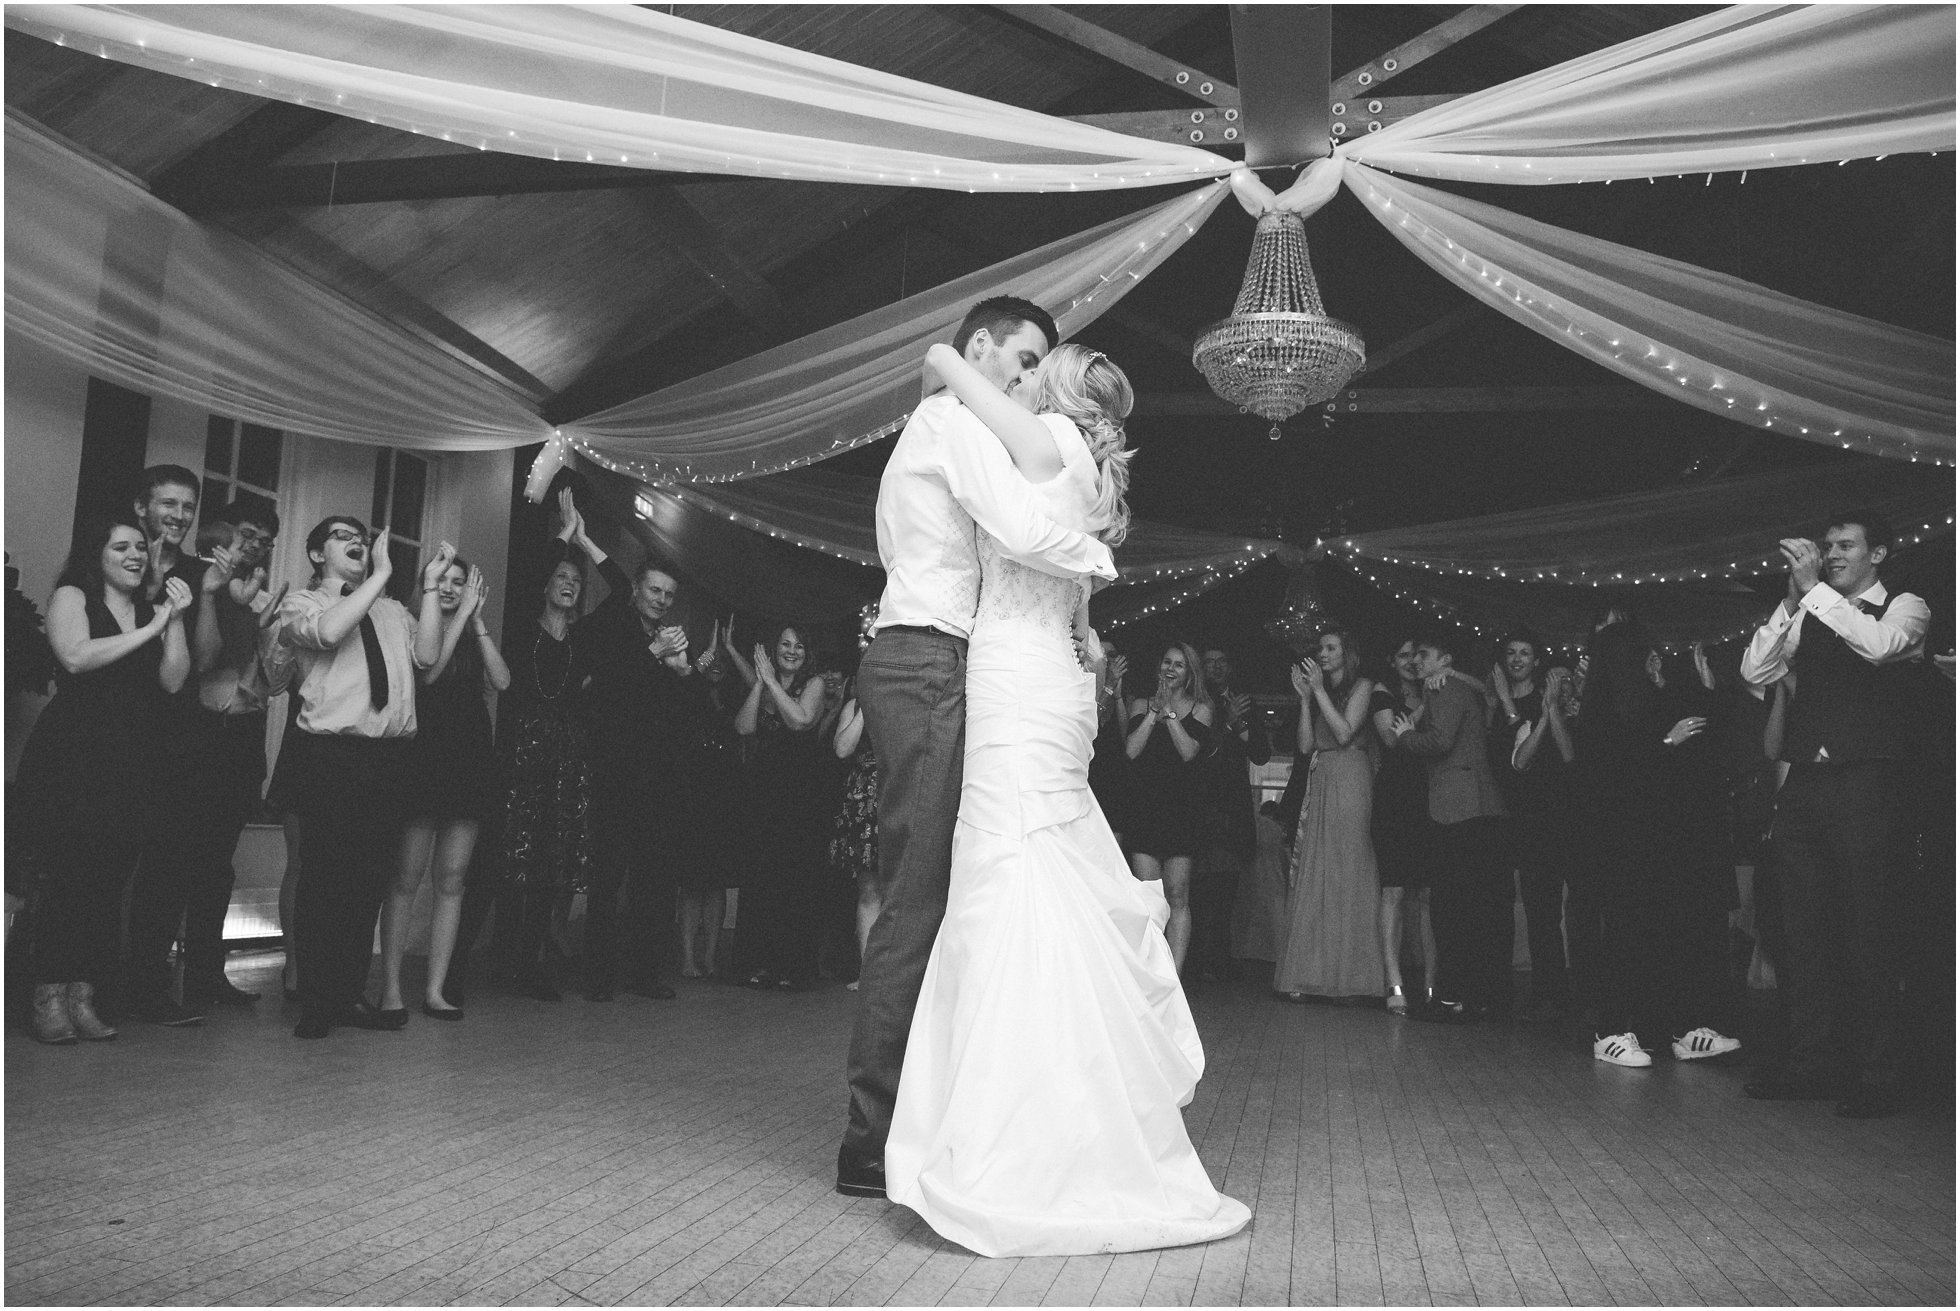 The happy couple applauded by their friends and family at a Brooksby Hall Wedding Photographer's dream wedding!